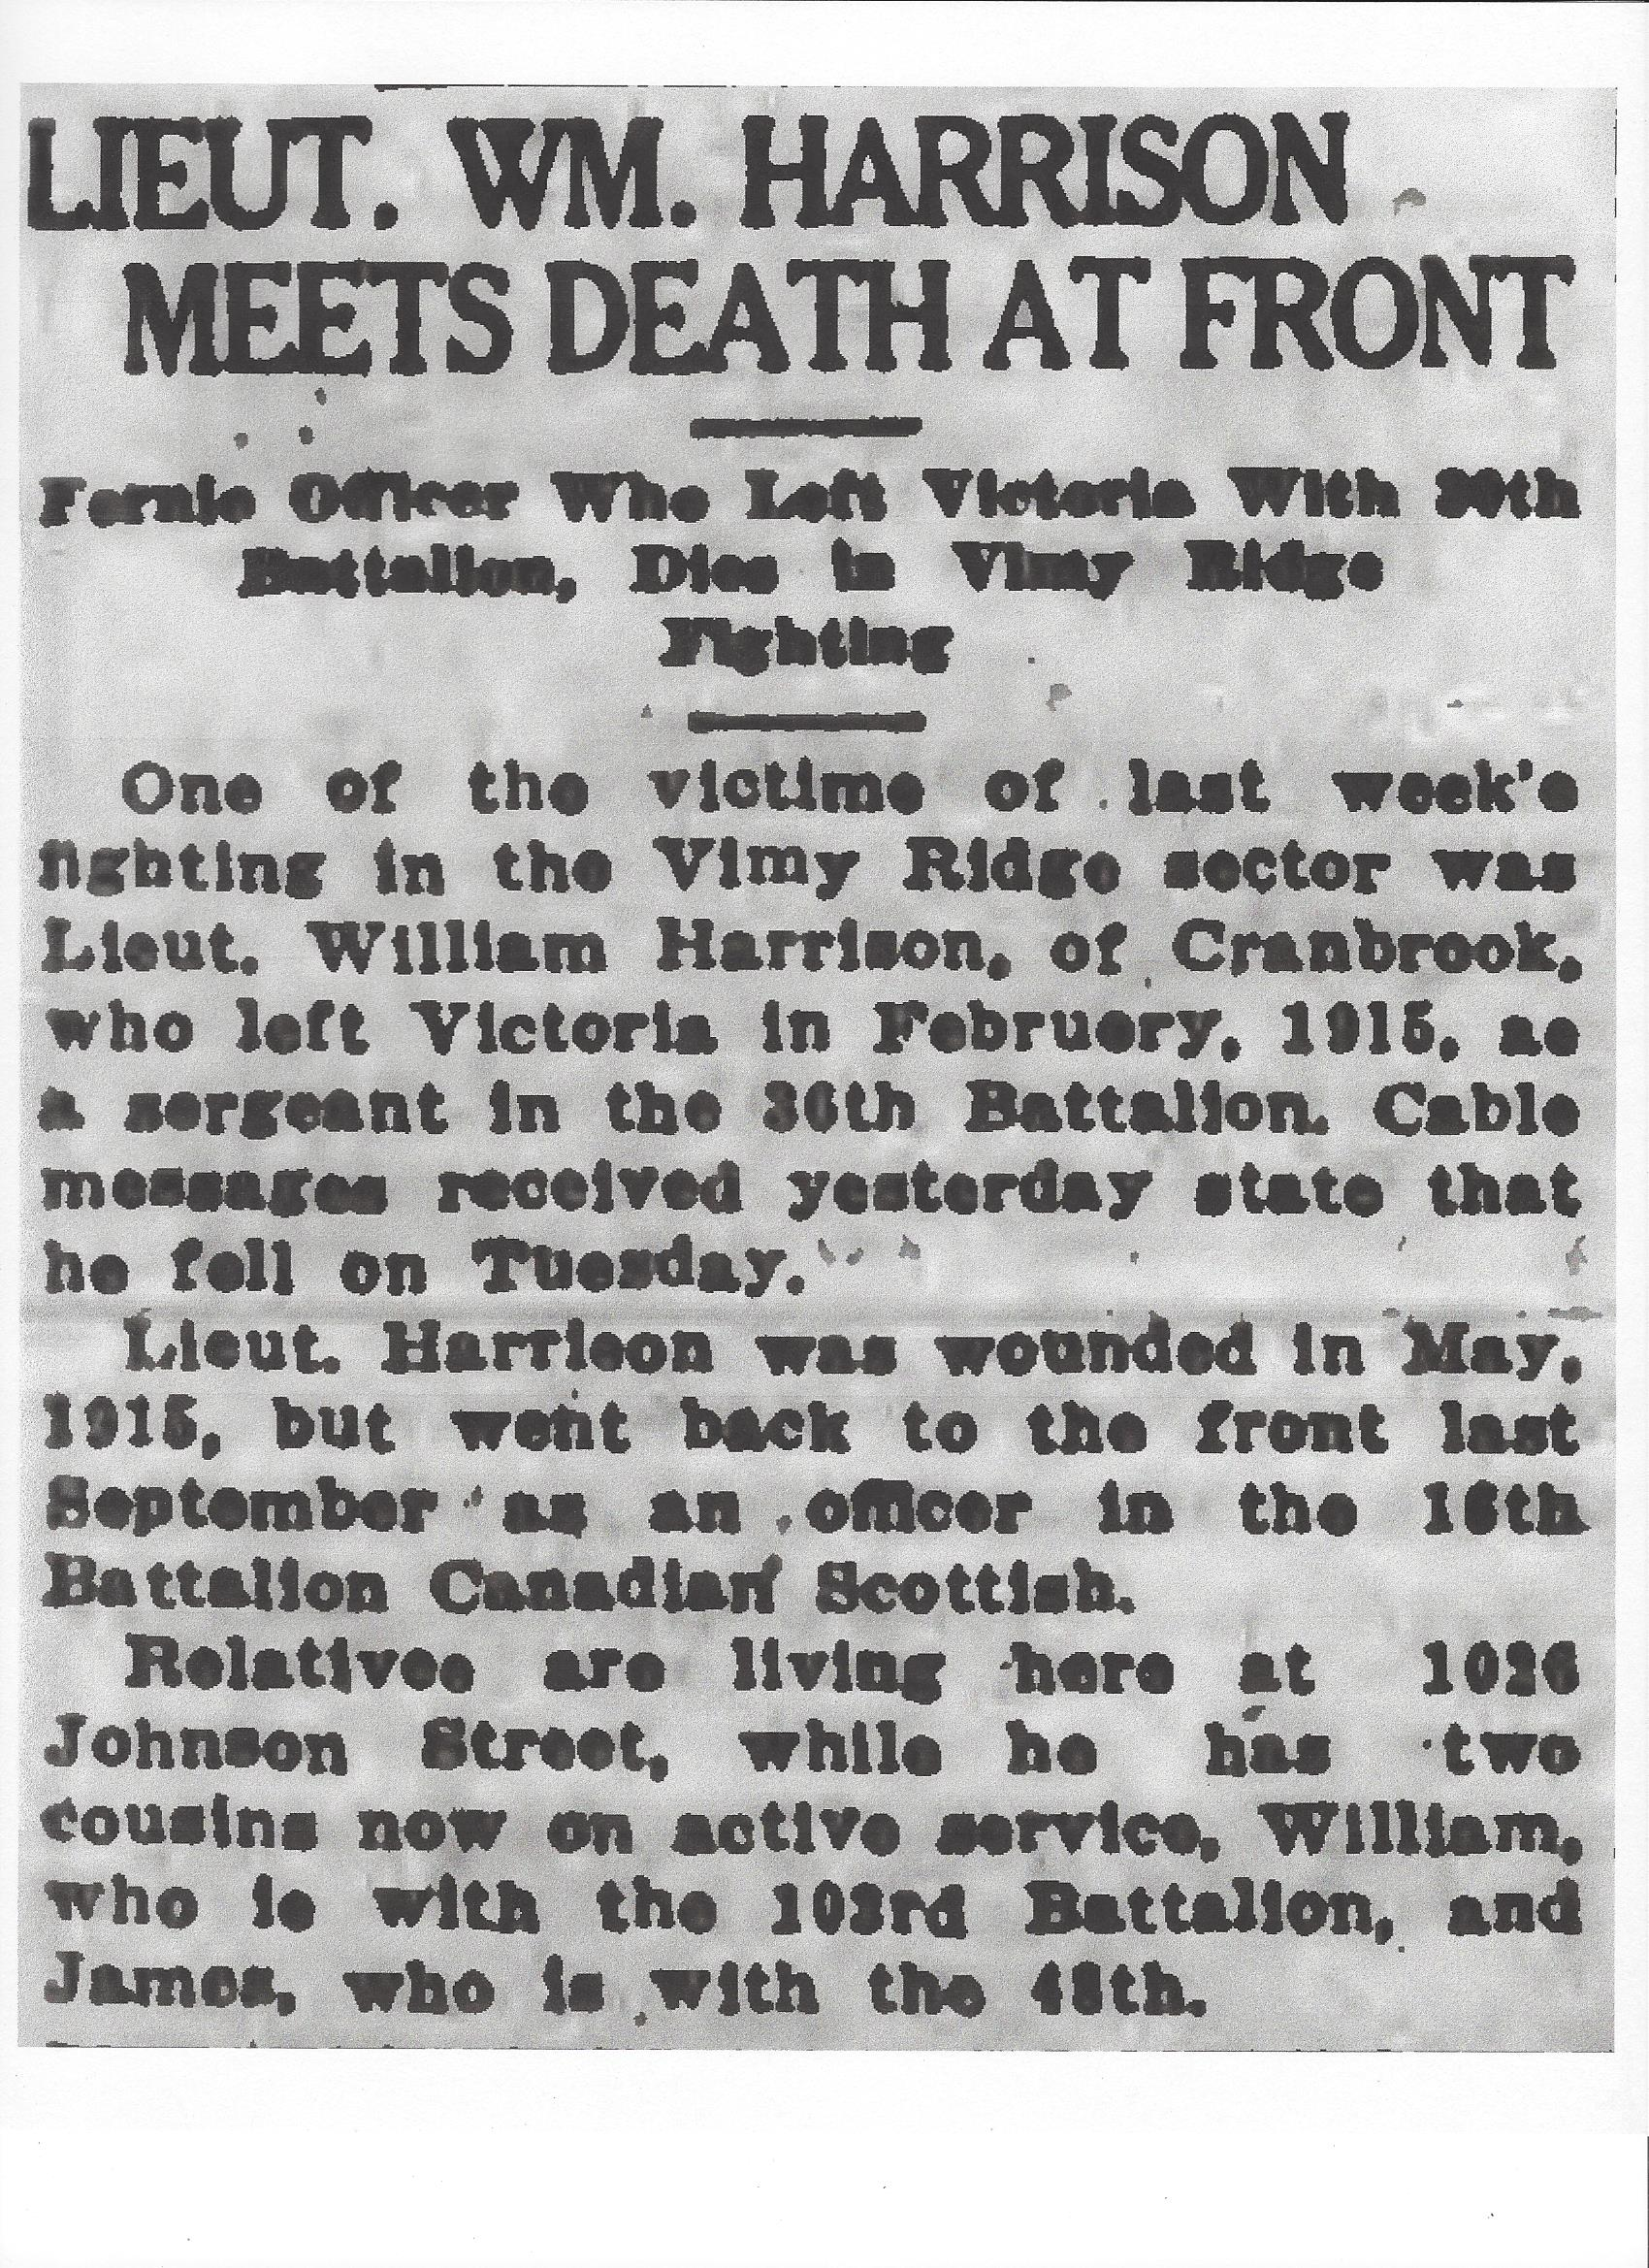 Newspaper clipping– From the Daily Colonist of April 21, 1917. Image taken from web address of http://archive.org/stream/dailycolonist59y114uvic#page/n0/mode/1up